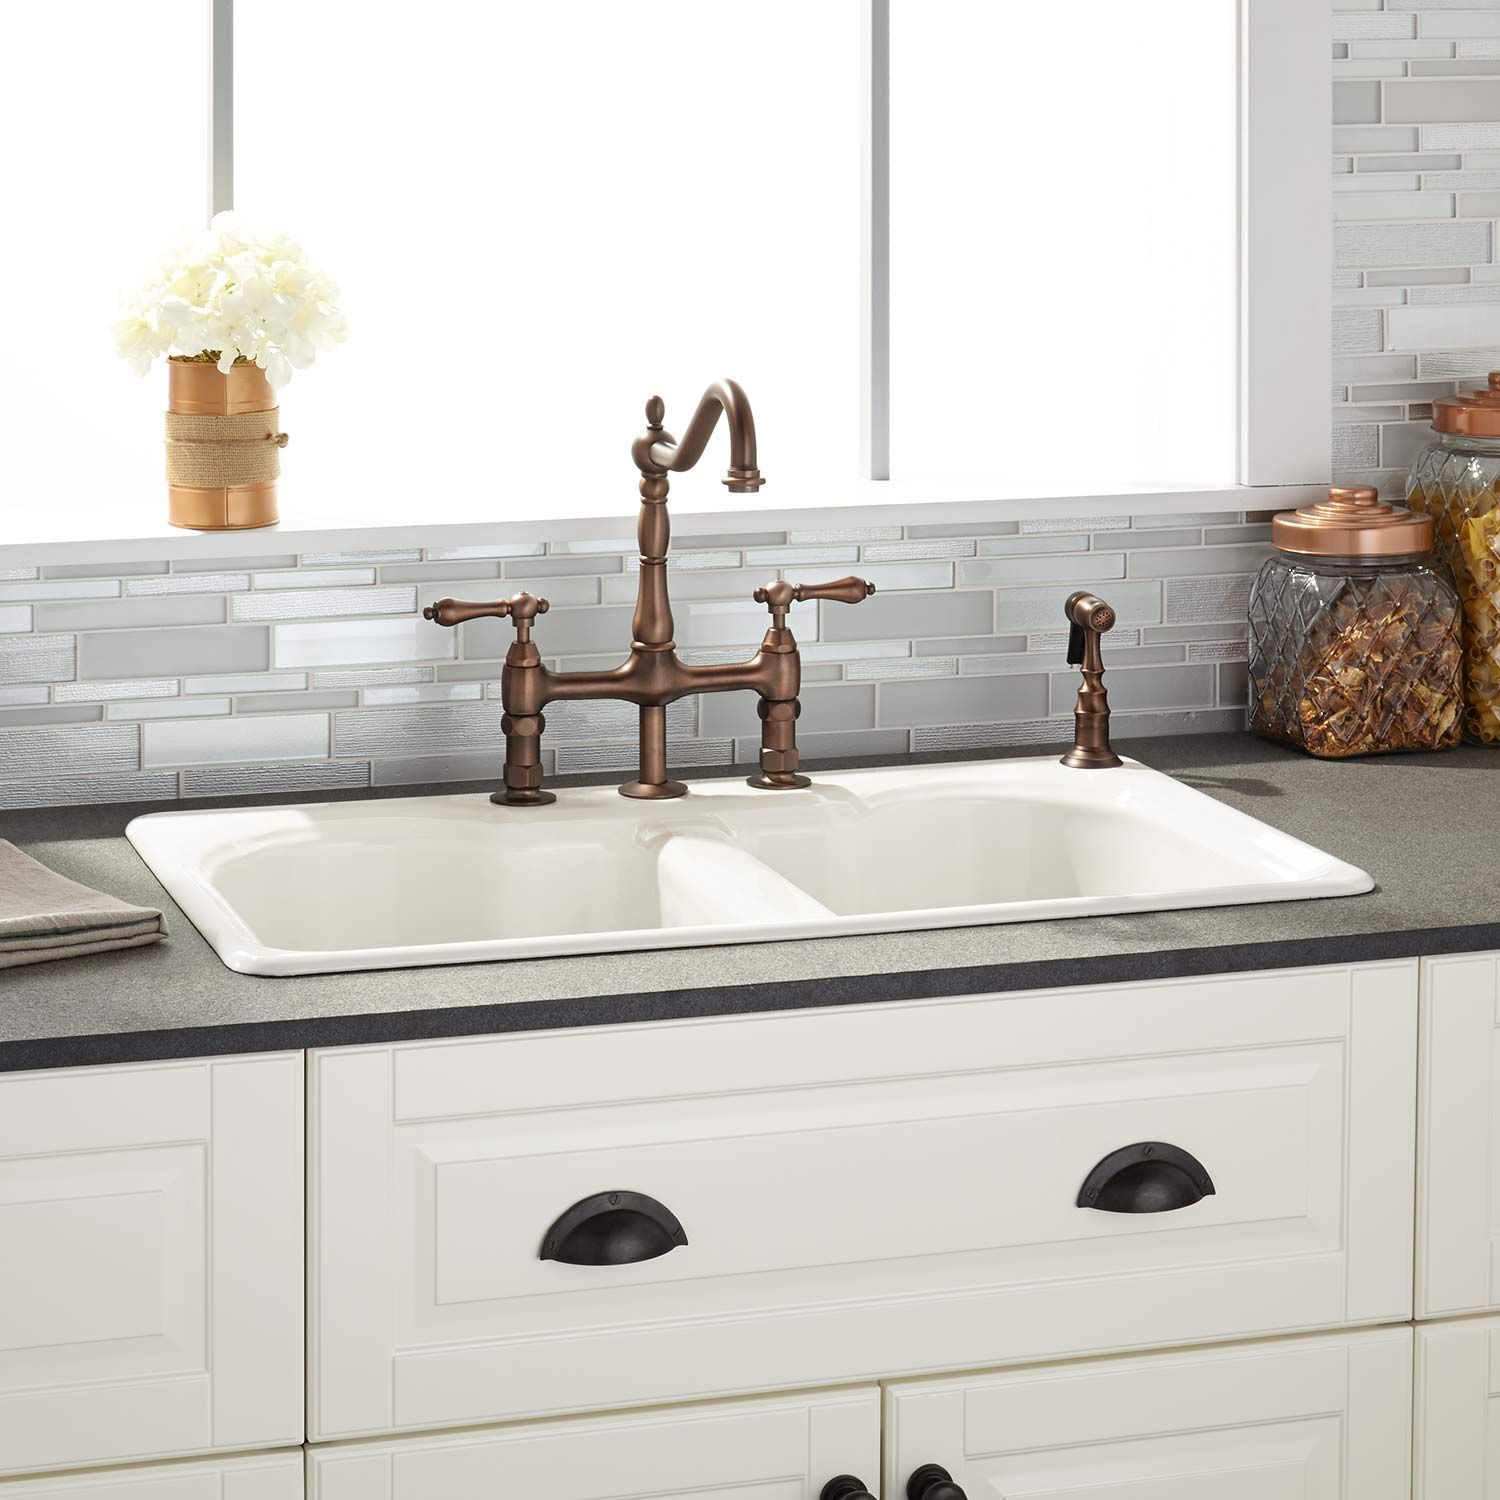 32 Berwick Double Bowl Cast Iron Drop In Kitchen Sink In White